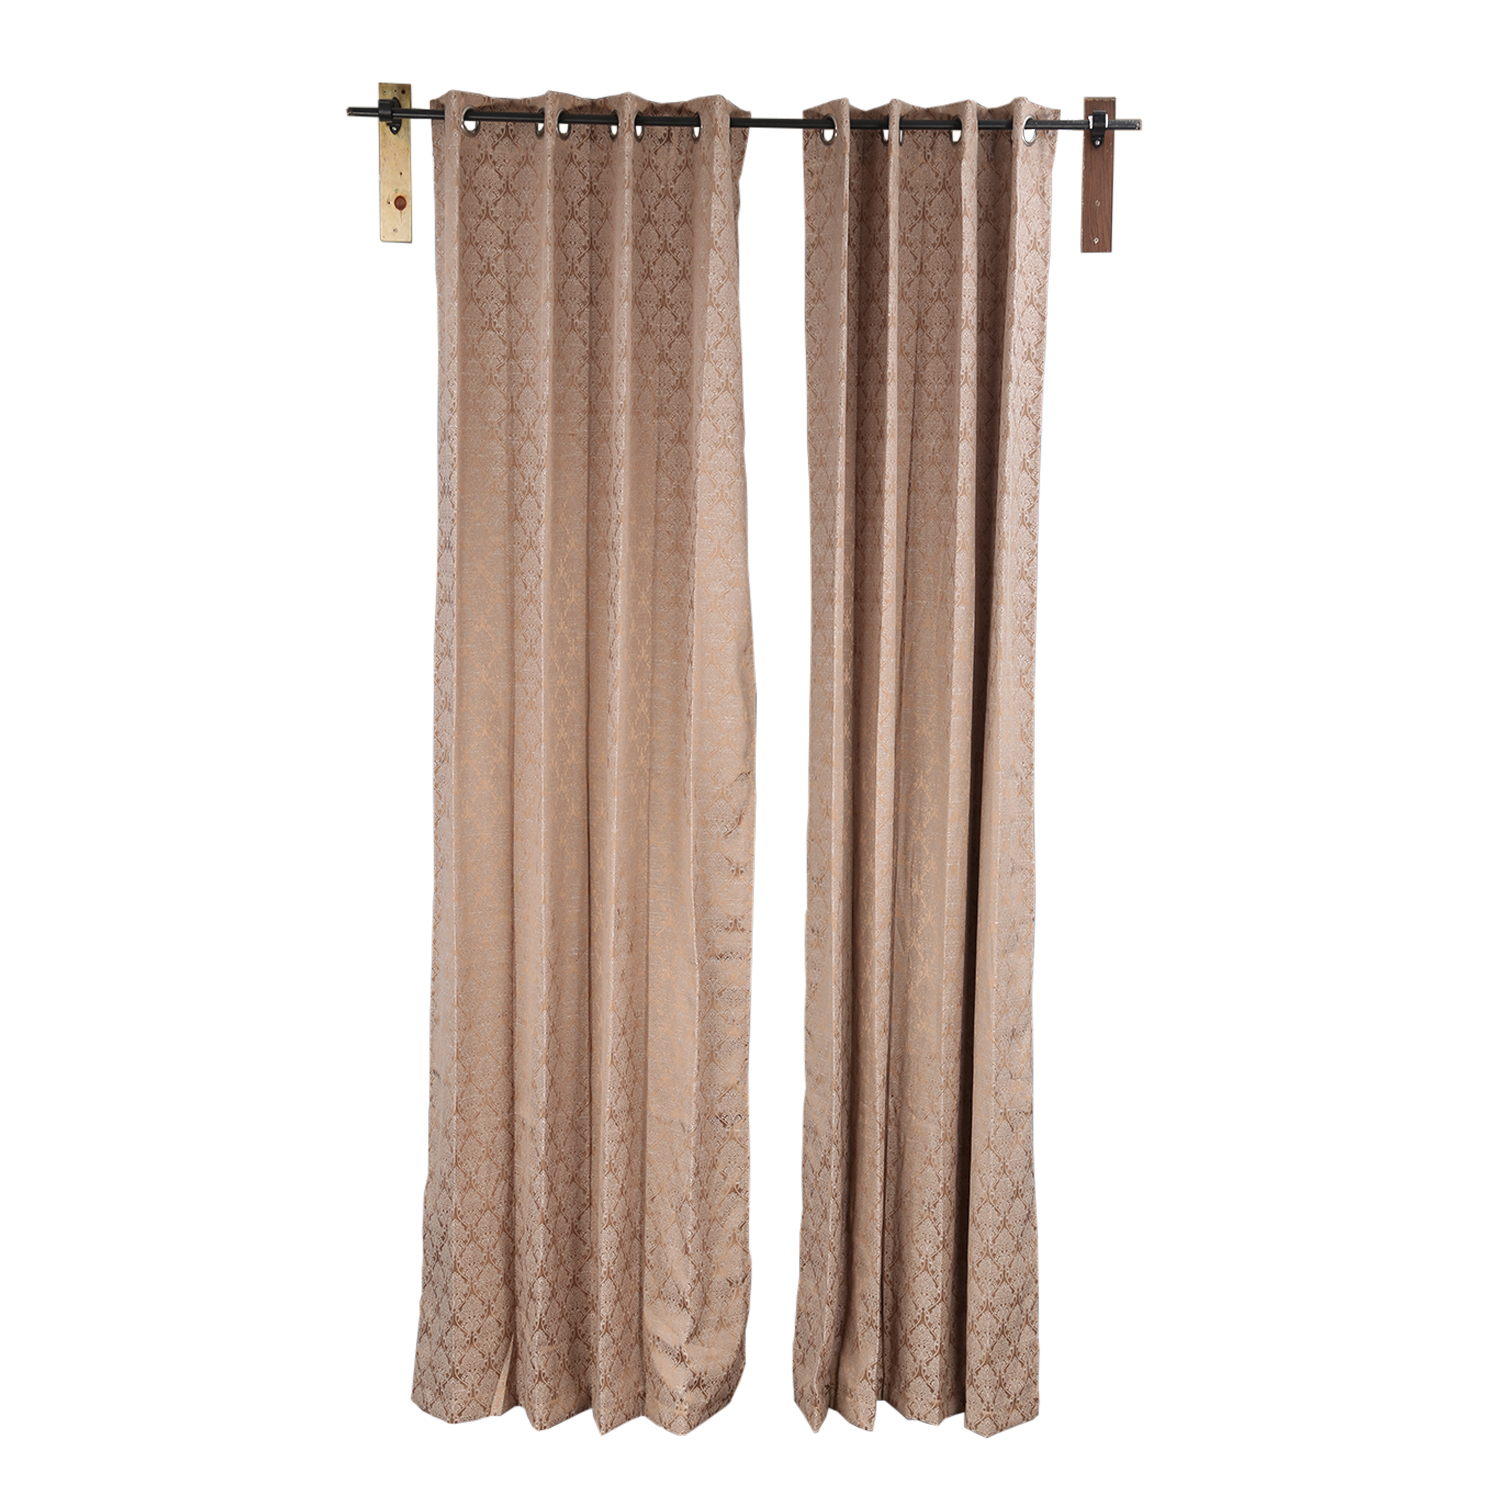 Aspen Polyester Window Curtains in Brown Colour by Living Essence